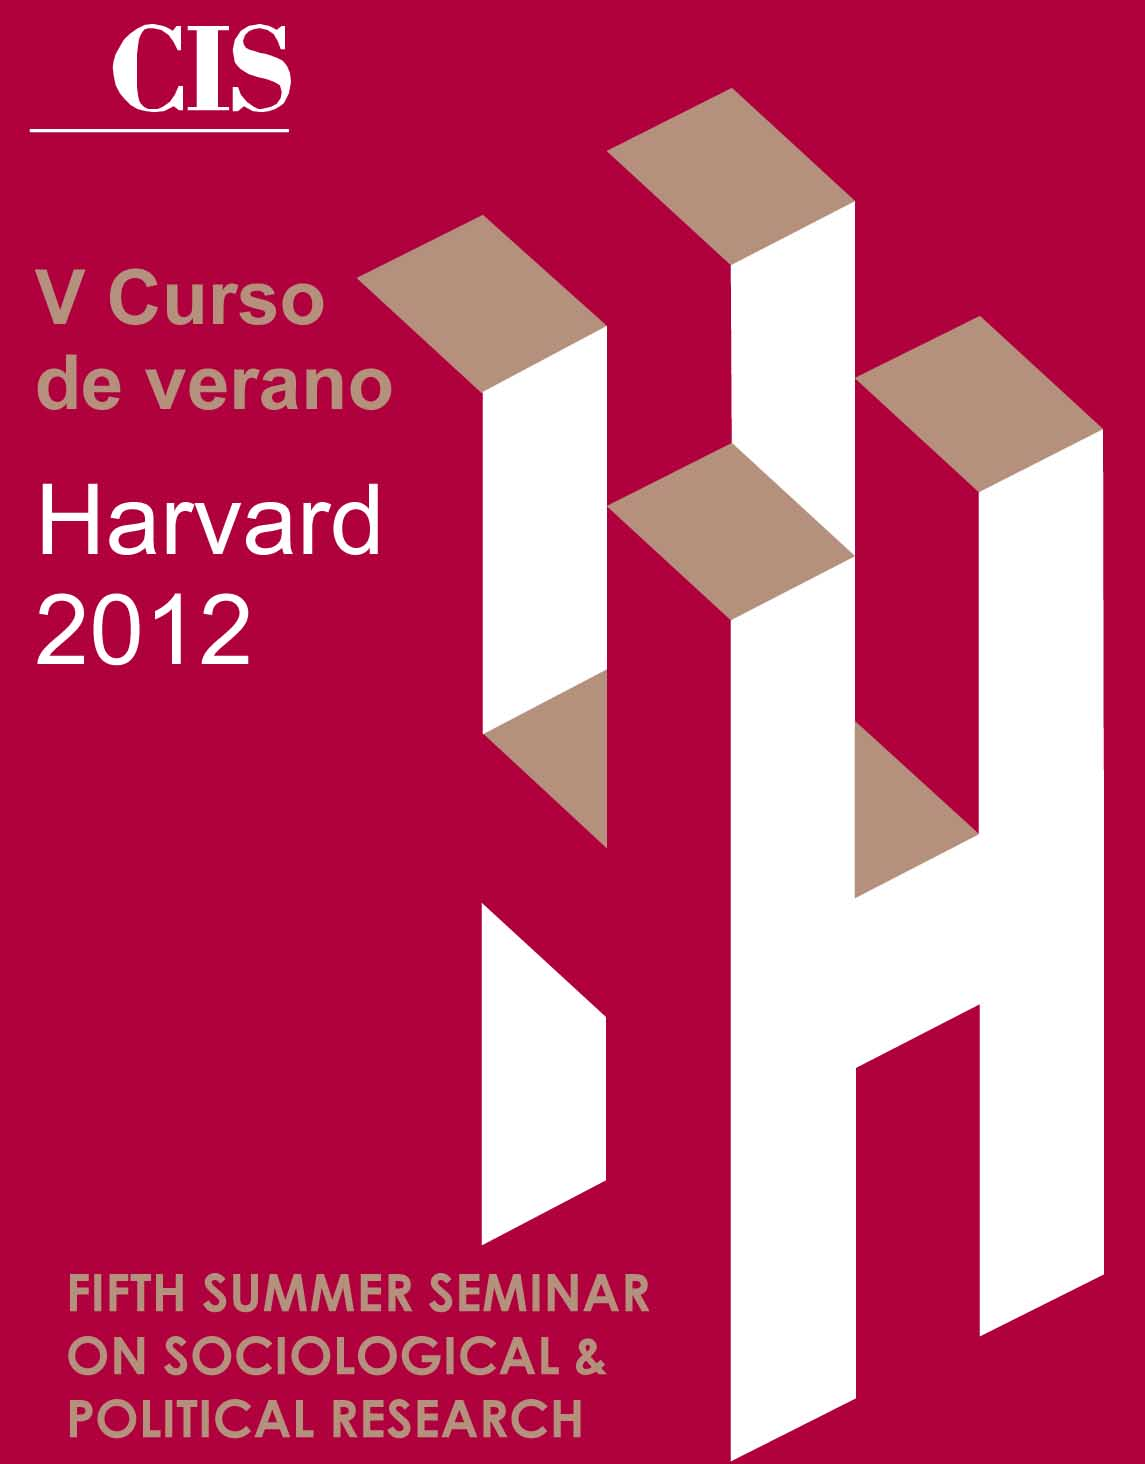 Fifth Summer Seminar on Sociological and Political Research (Harvard) Logo